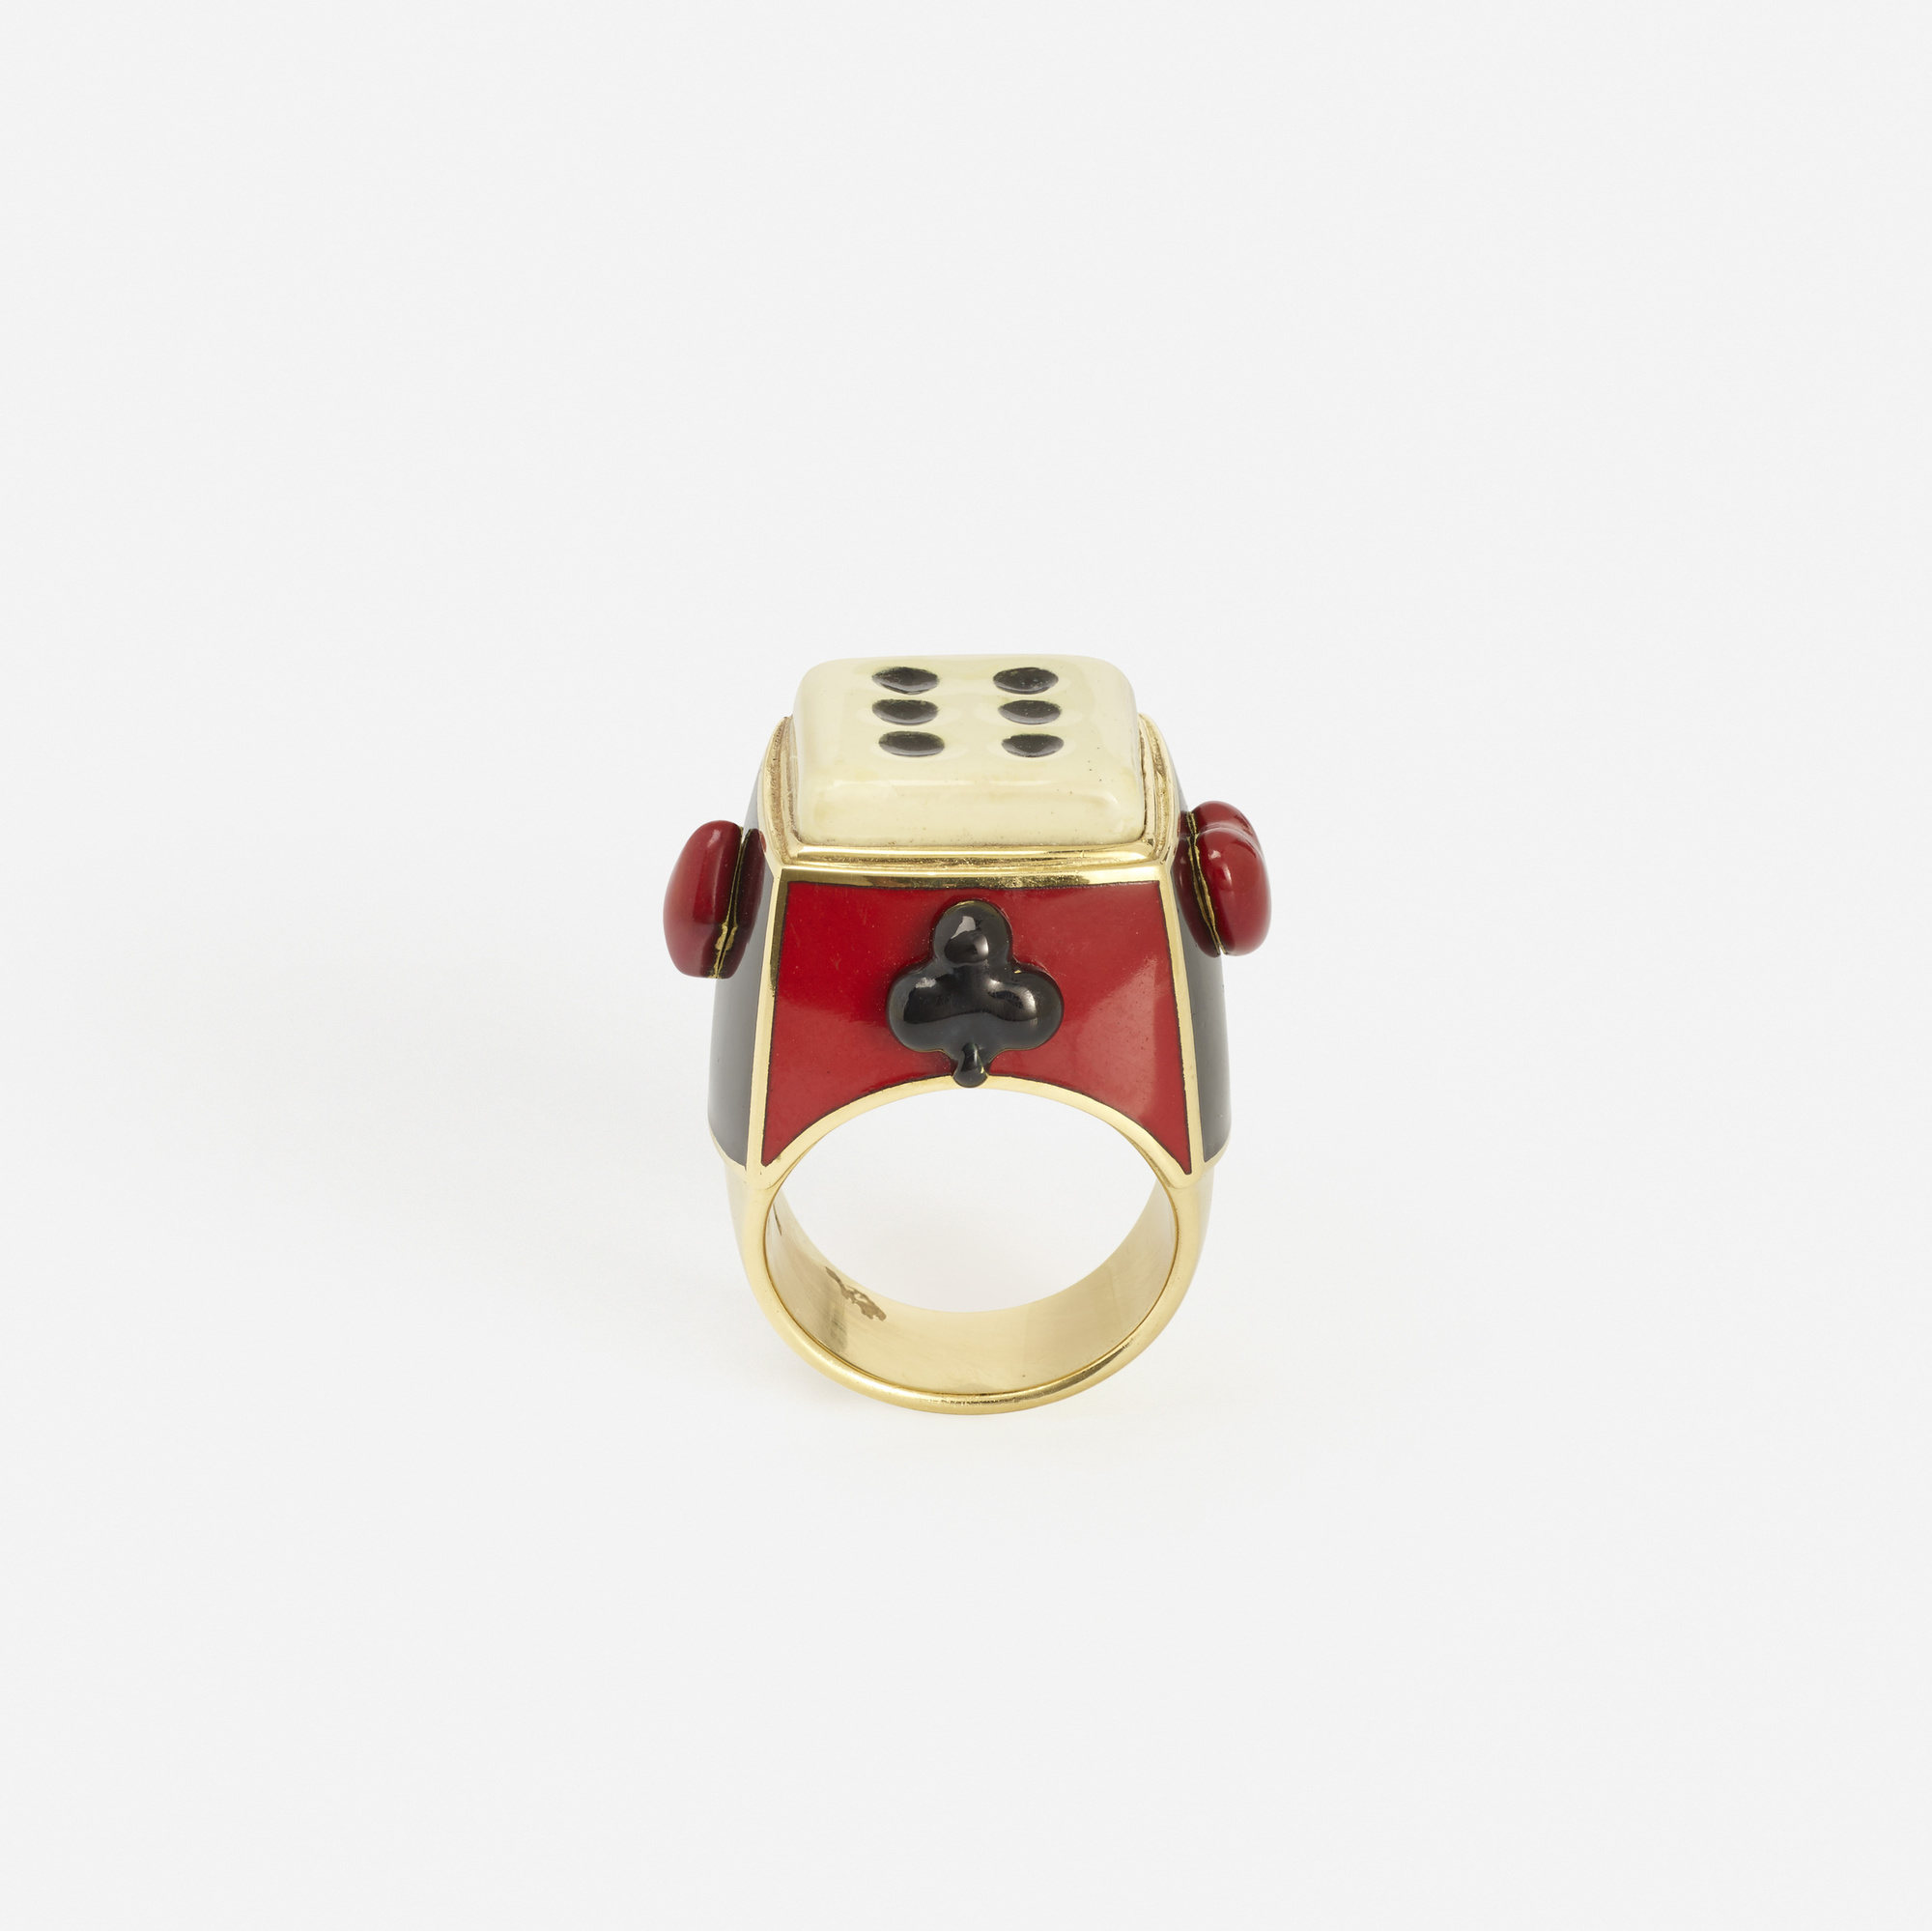 208: Solange Azagury-Partridge / A gold and enamel gaming ring (2 of 2)